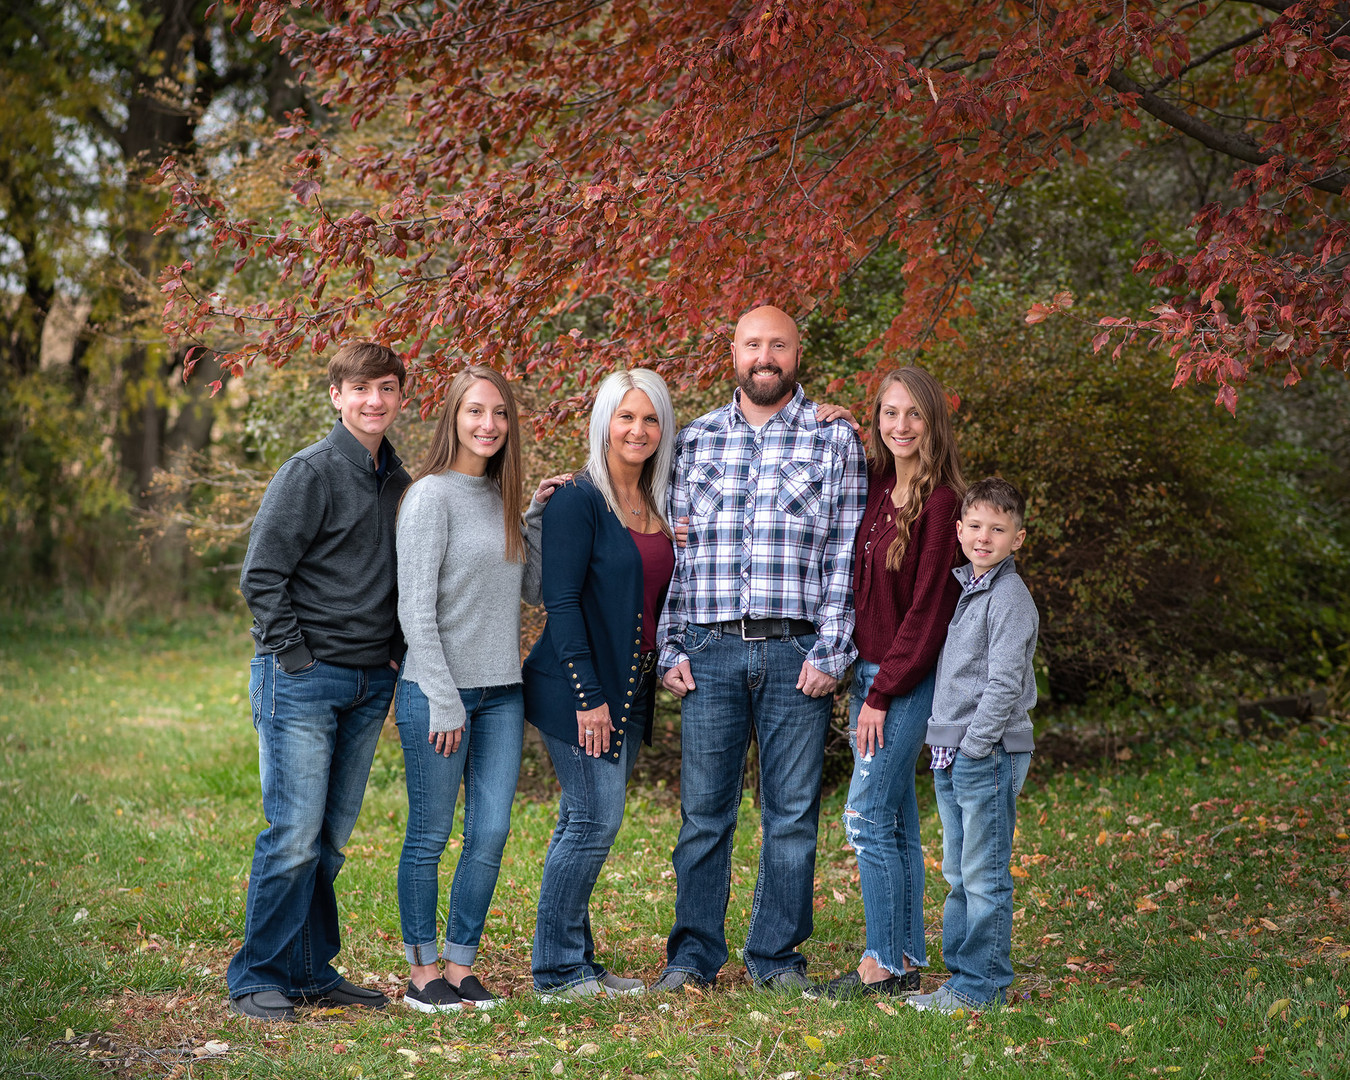 fall-family-photo-nebraska-emdukat-photography